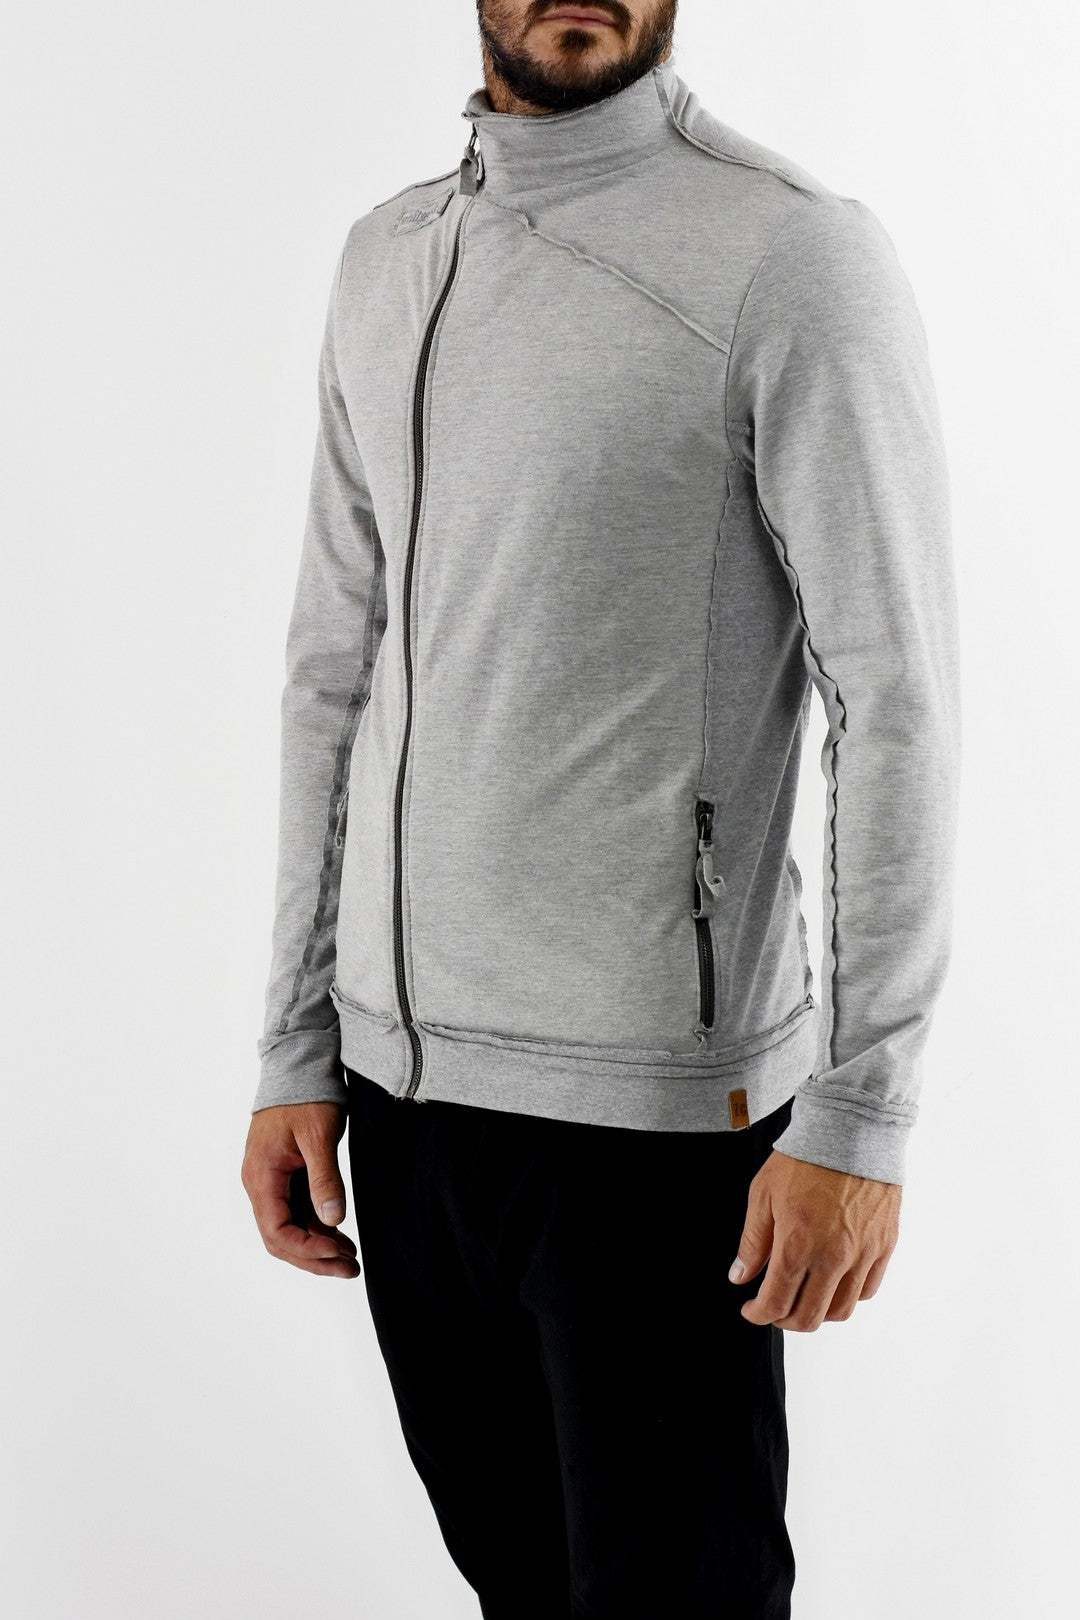 Mens Grey Asymmetric Zip Stretch Fleece Top ZG5325